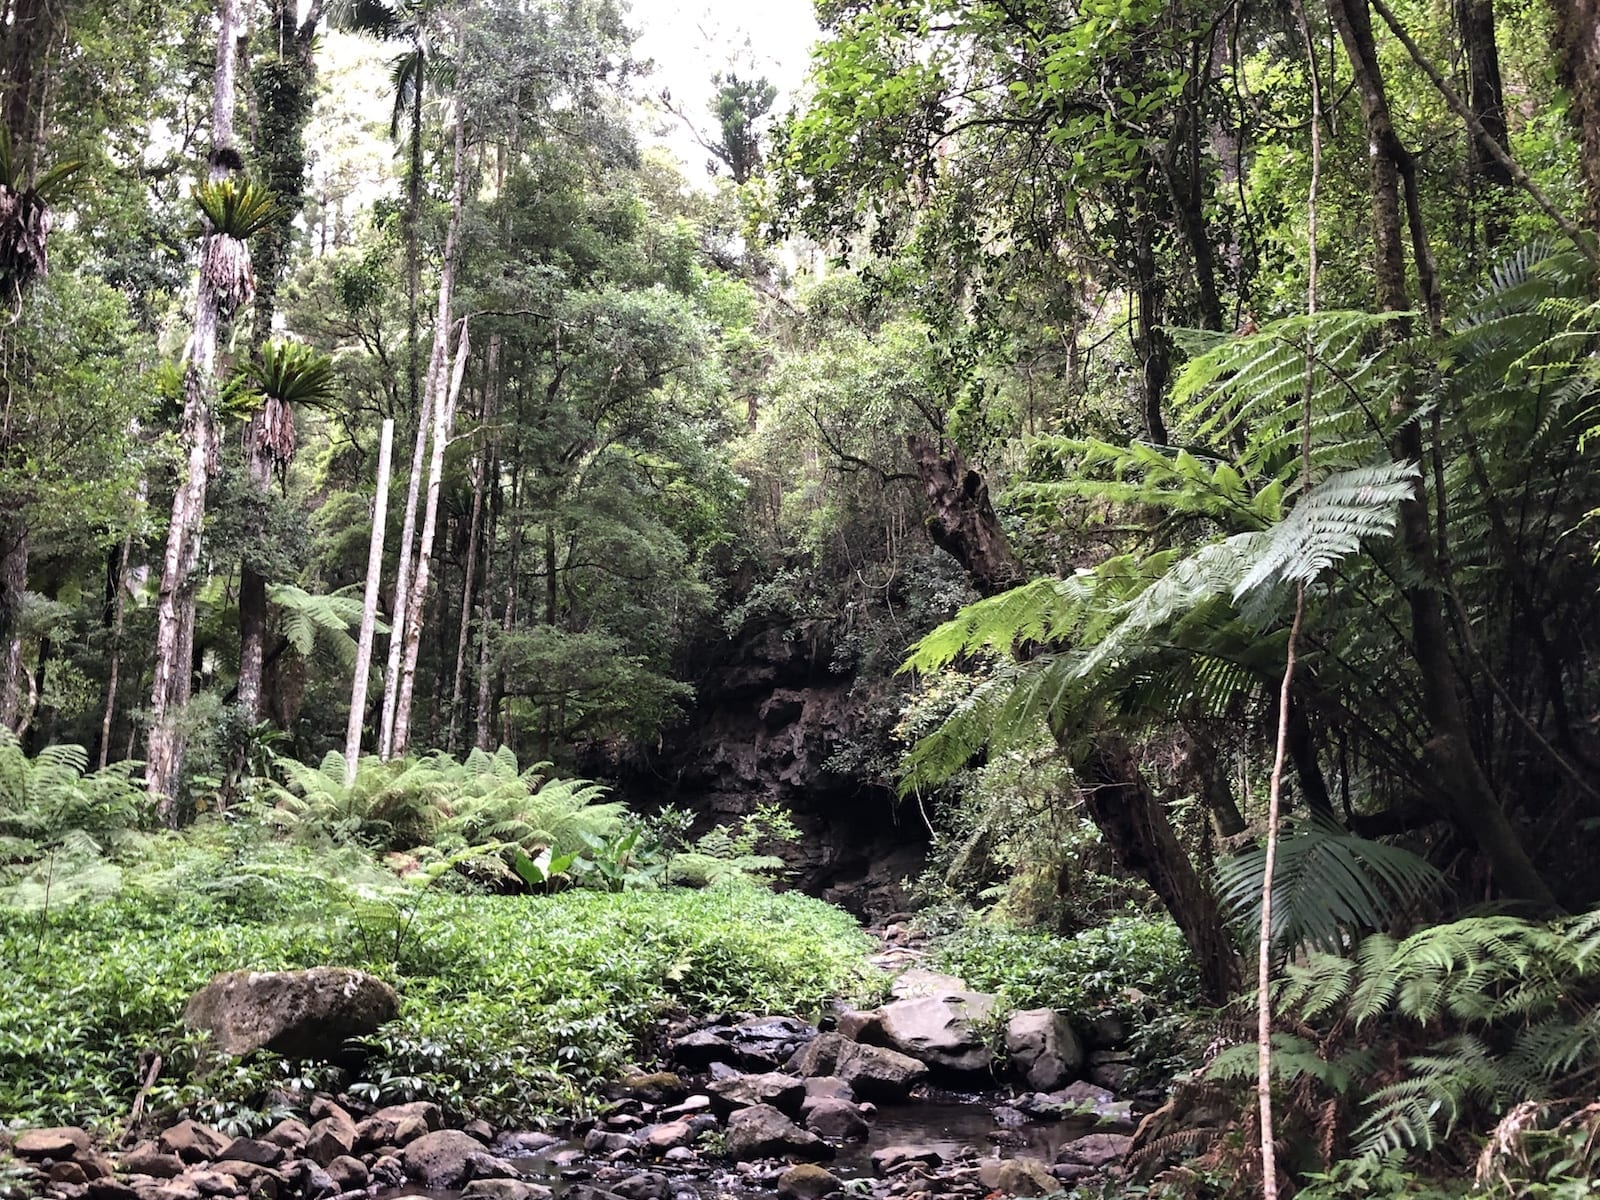 Dalrymple Creek cuts through the rainforest on the Cascades rainforest walk.